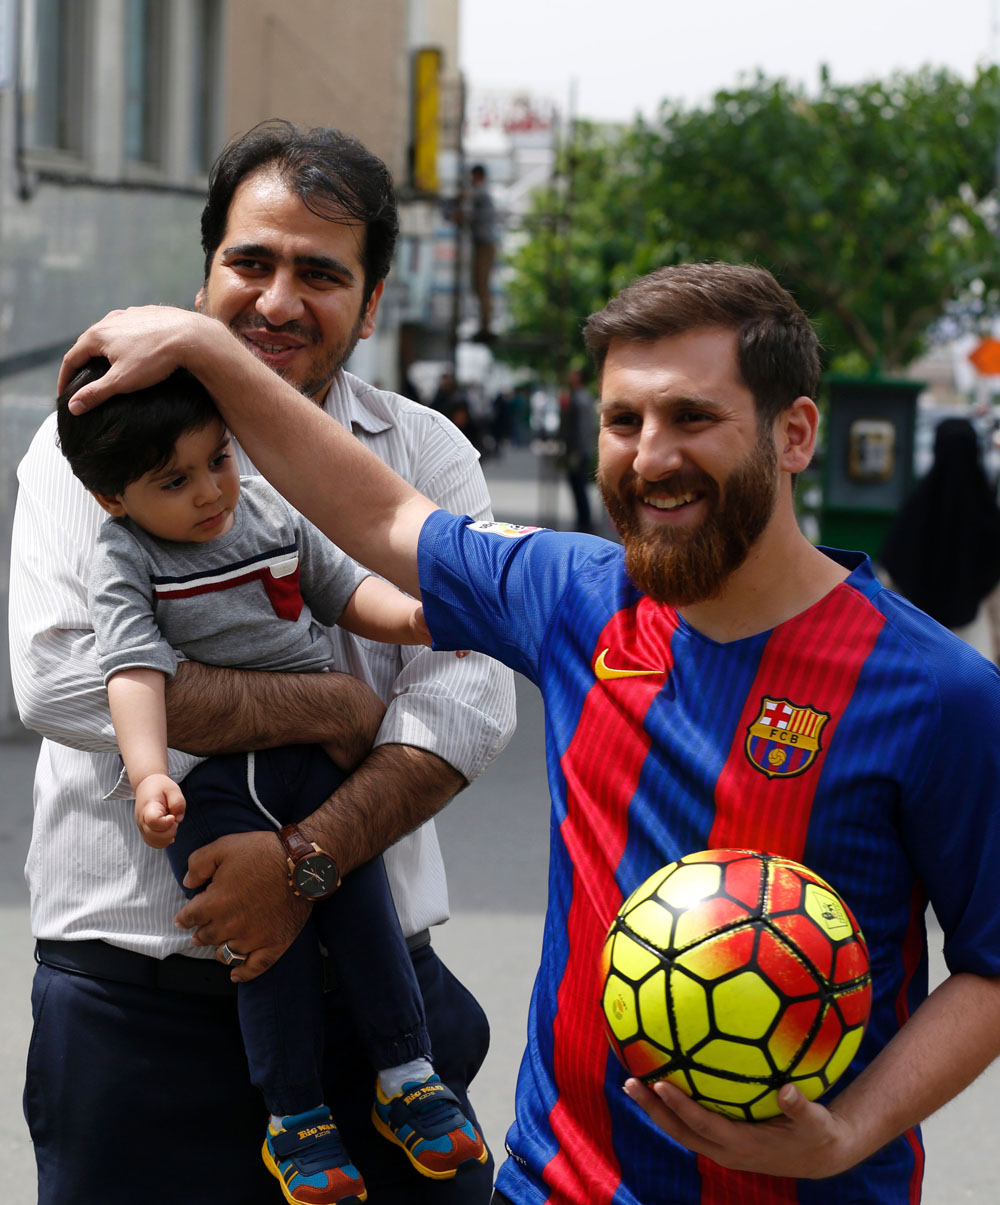 Meet reza perestesh irans own version of lionel messi lifestyle meet reza perestes hes a regular guy from iran but hes gained popularity for his stunning resemblance to messi m4hsunfo Choice Image